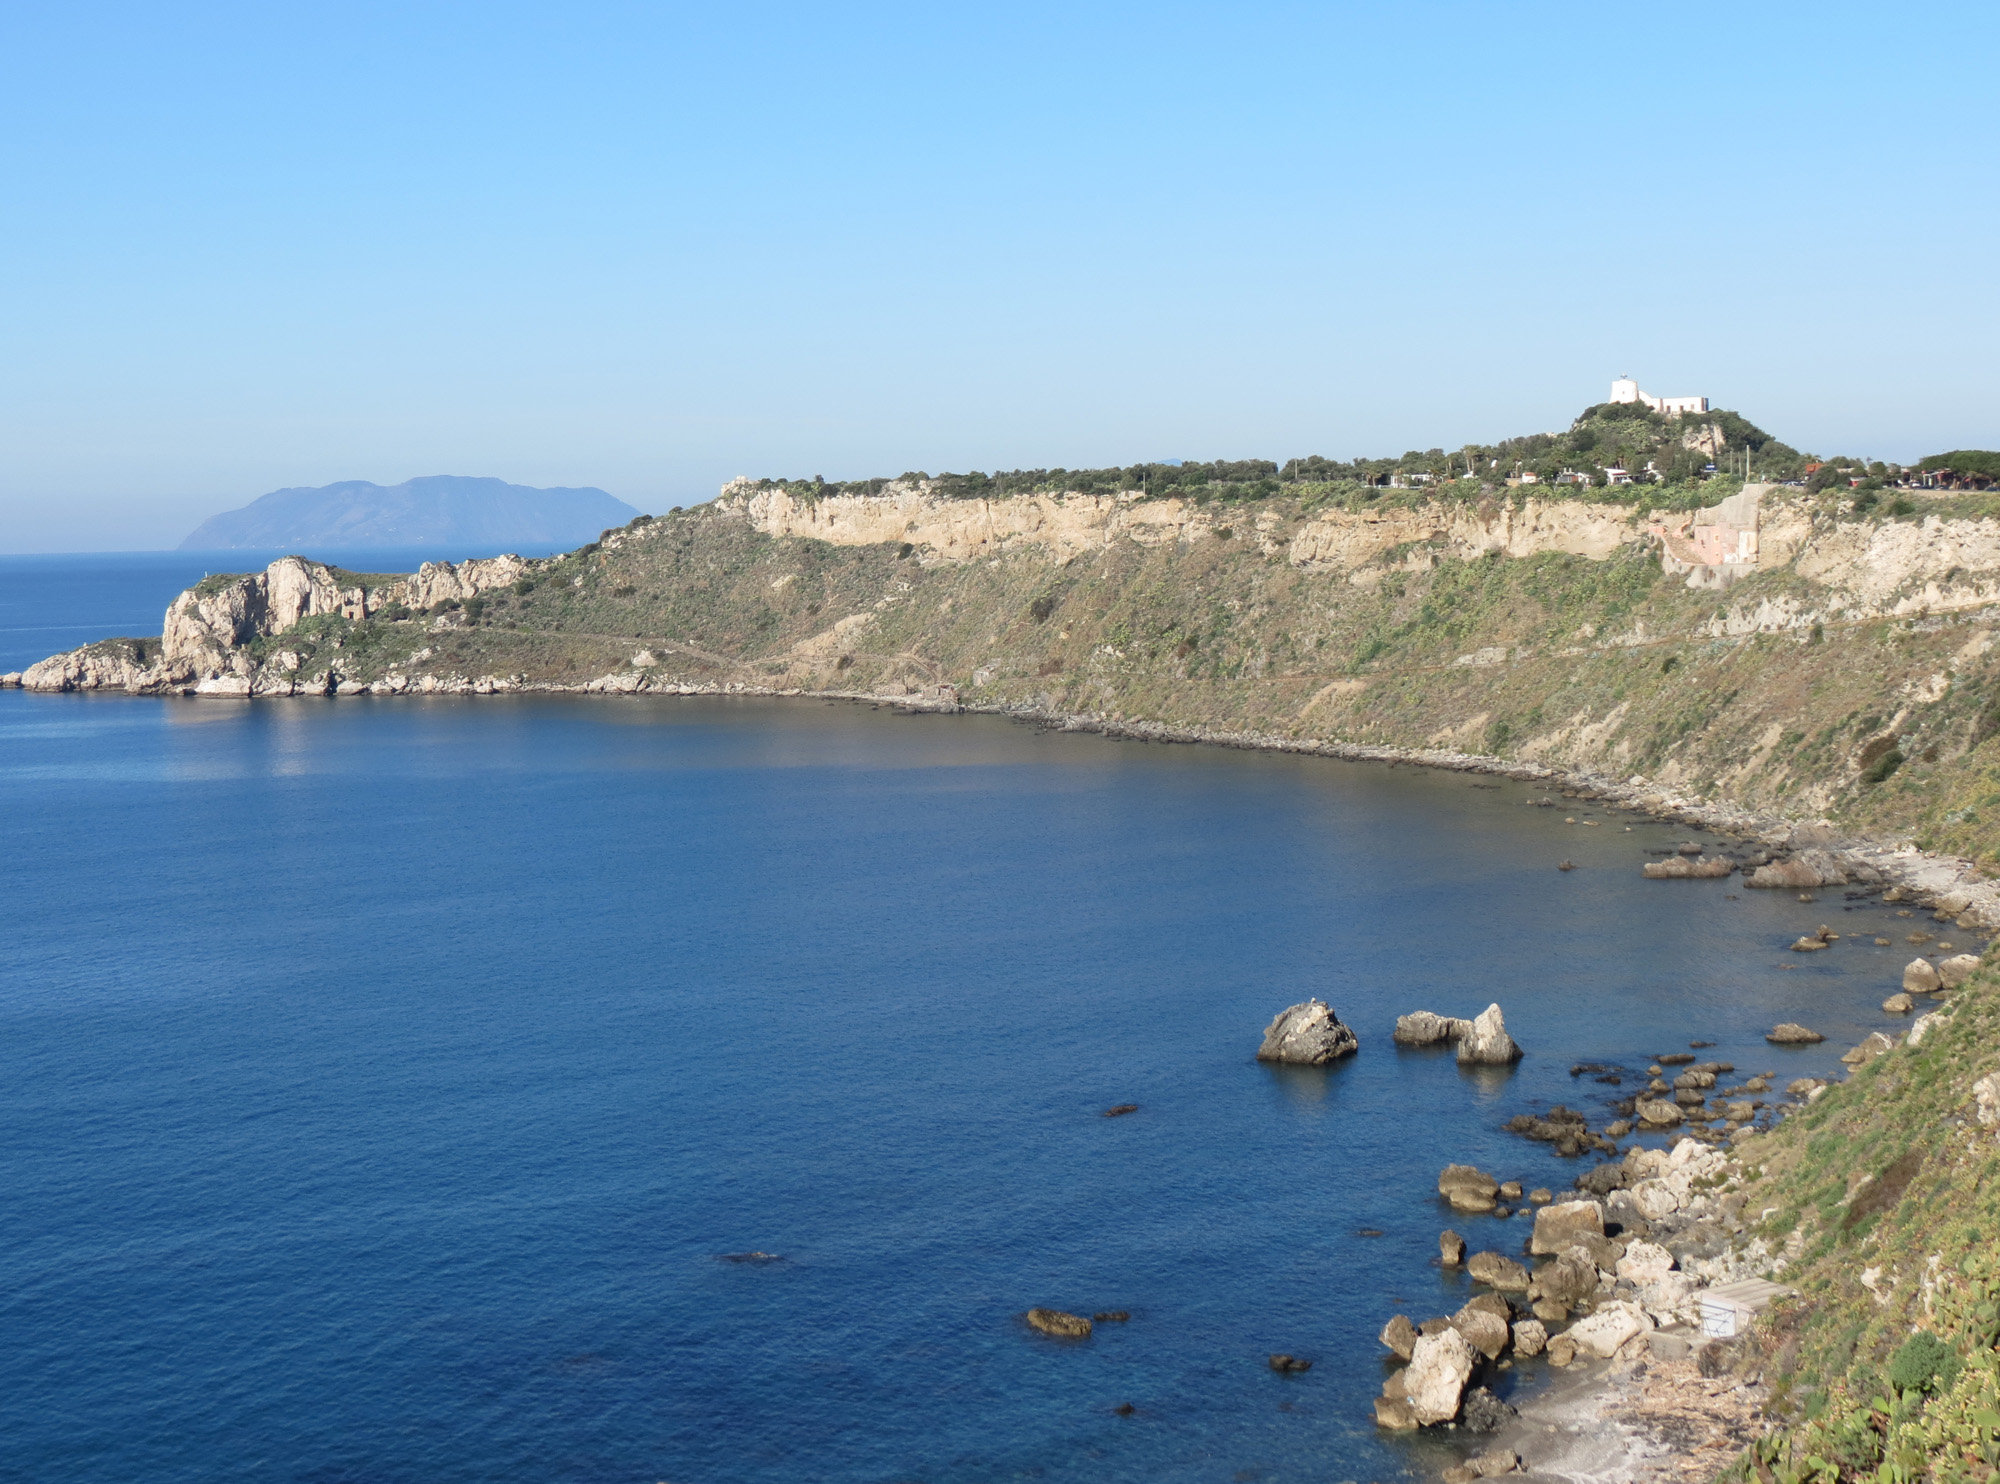 view of the Capo Milazzo